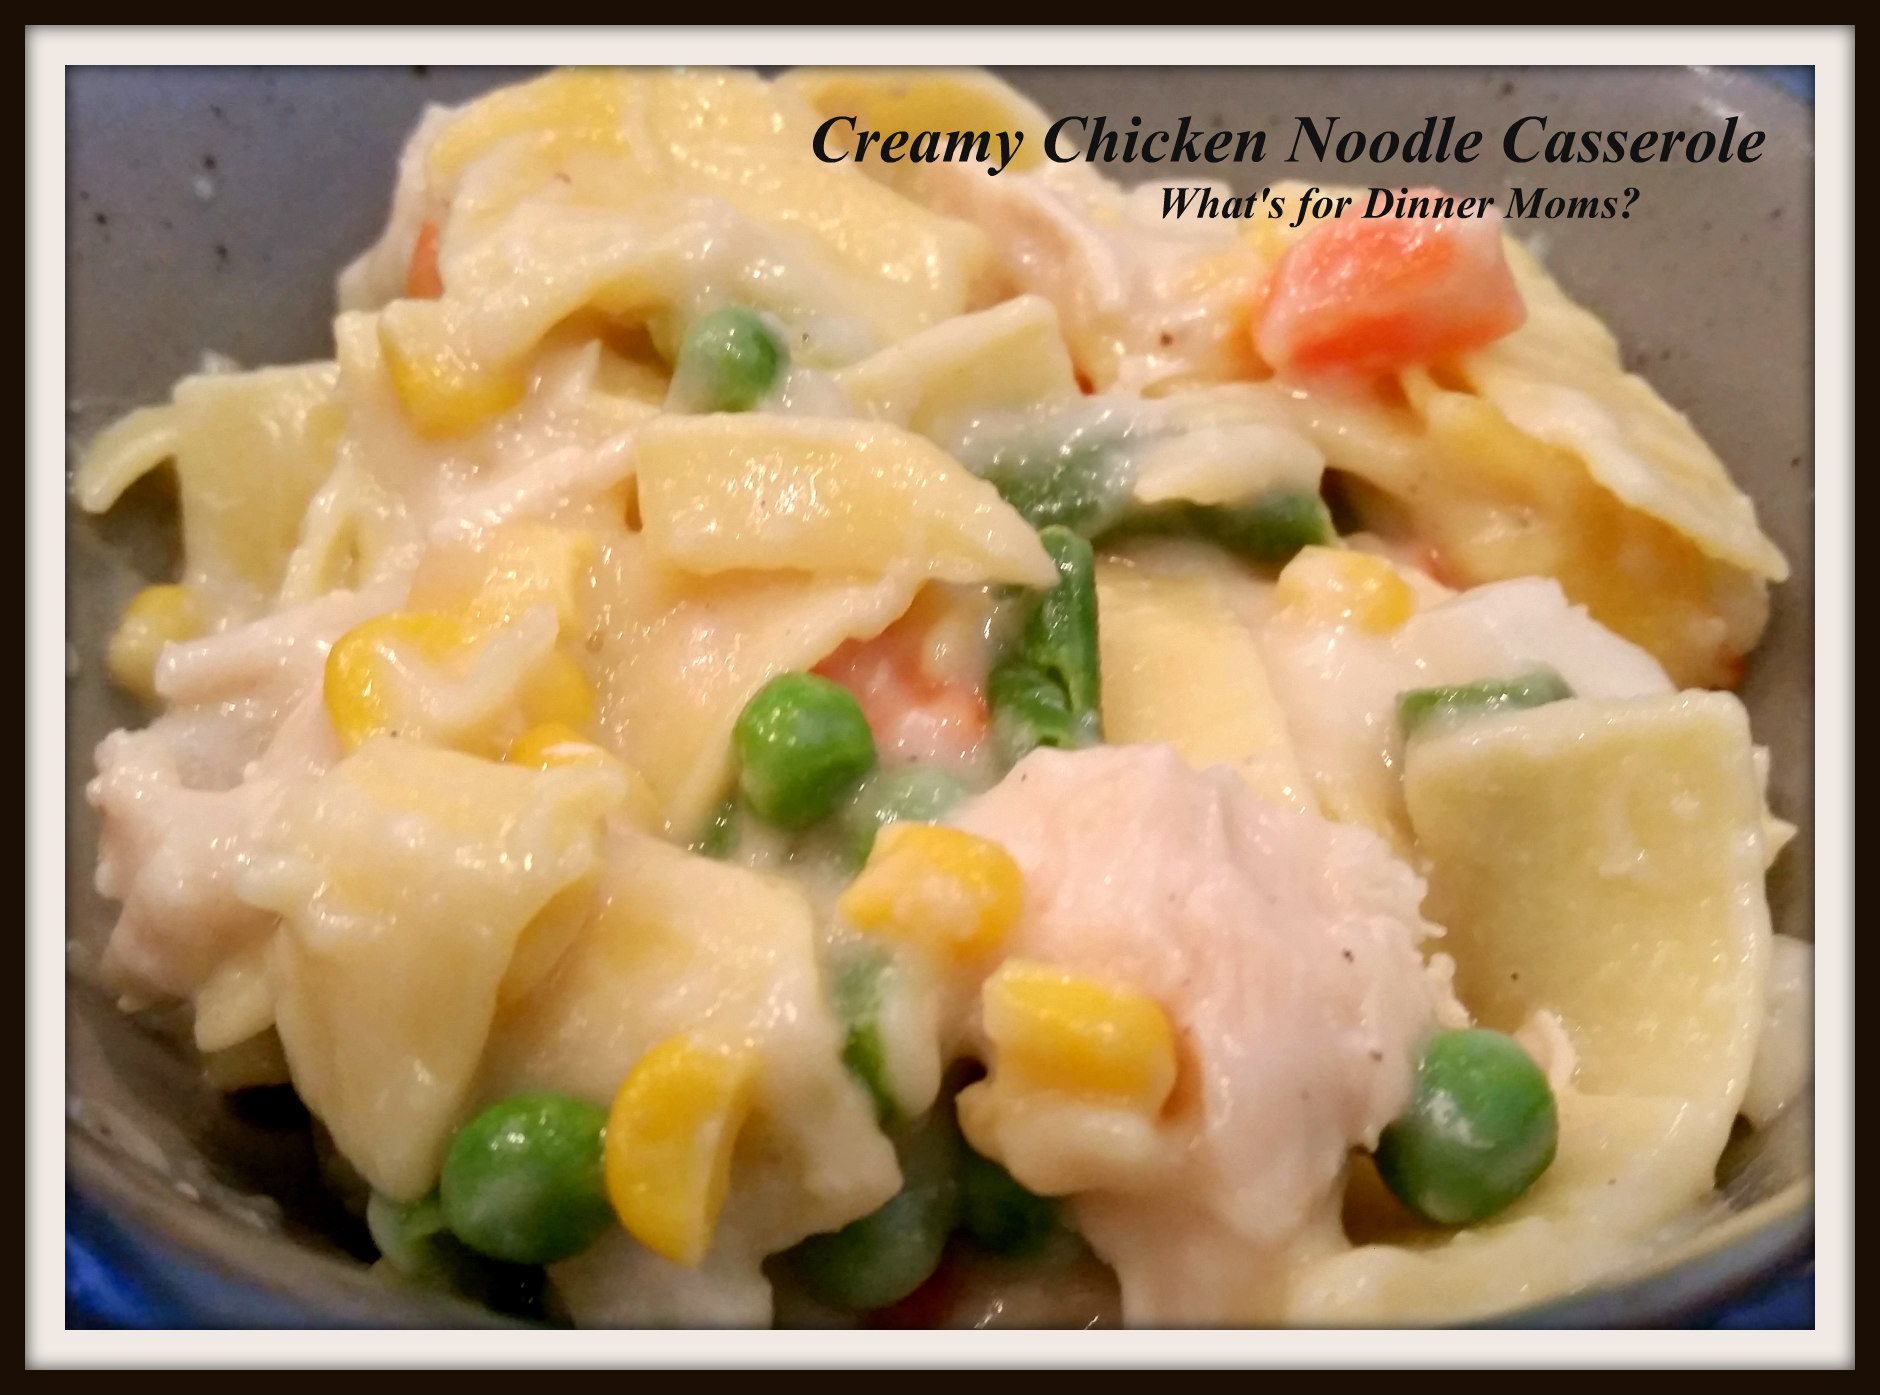 Creamy chicken noodle casserole no canned soup recipe whats for creamy chicken noodle casserole no canned soups 2 forumfinder Images